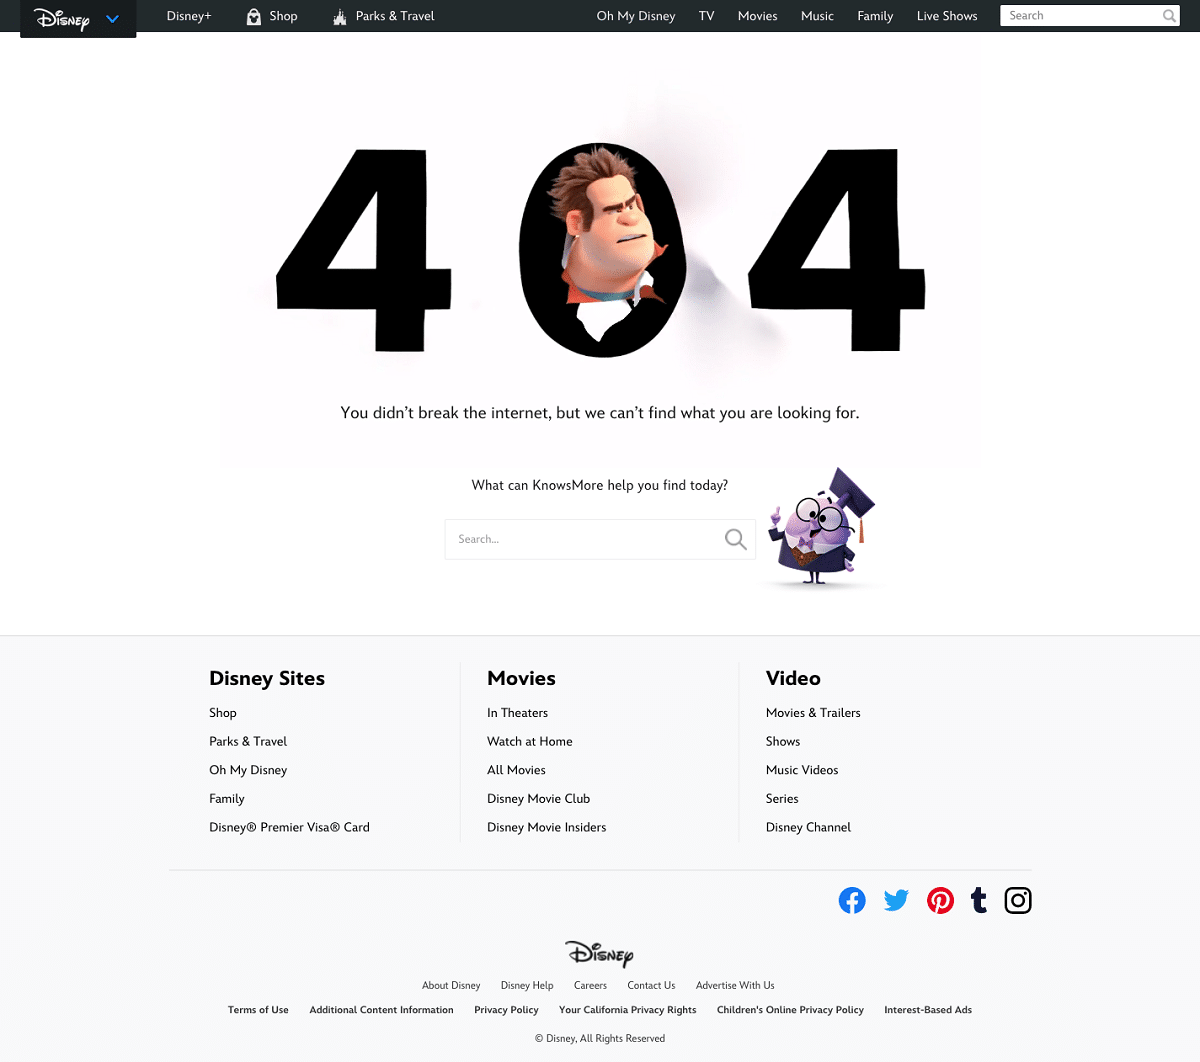 Screenshot of Disney's 404 error page, which features an image of Wreck-It Ralph from the movie Ralph Breaks the Internet.